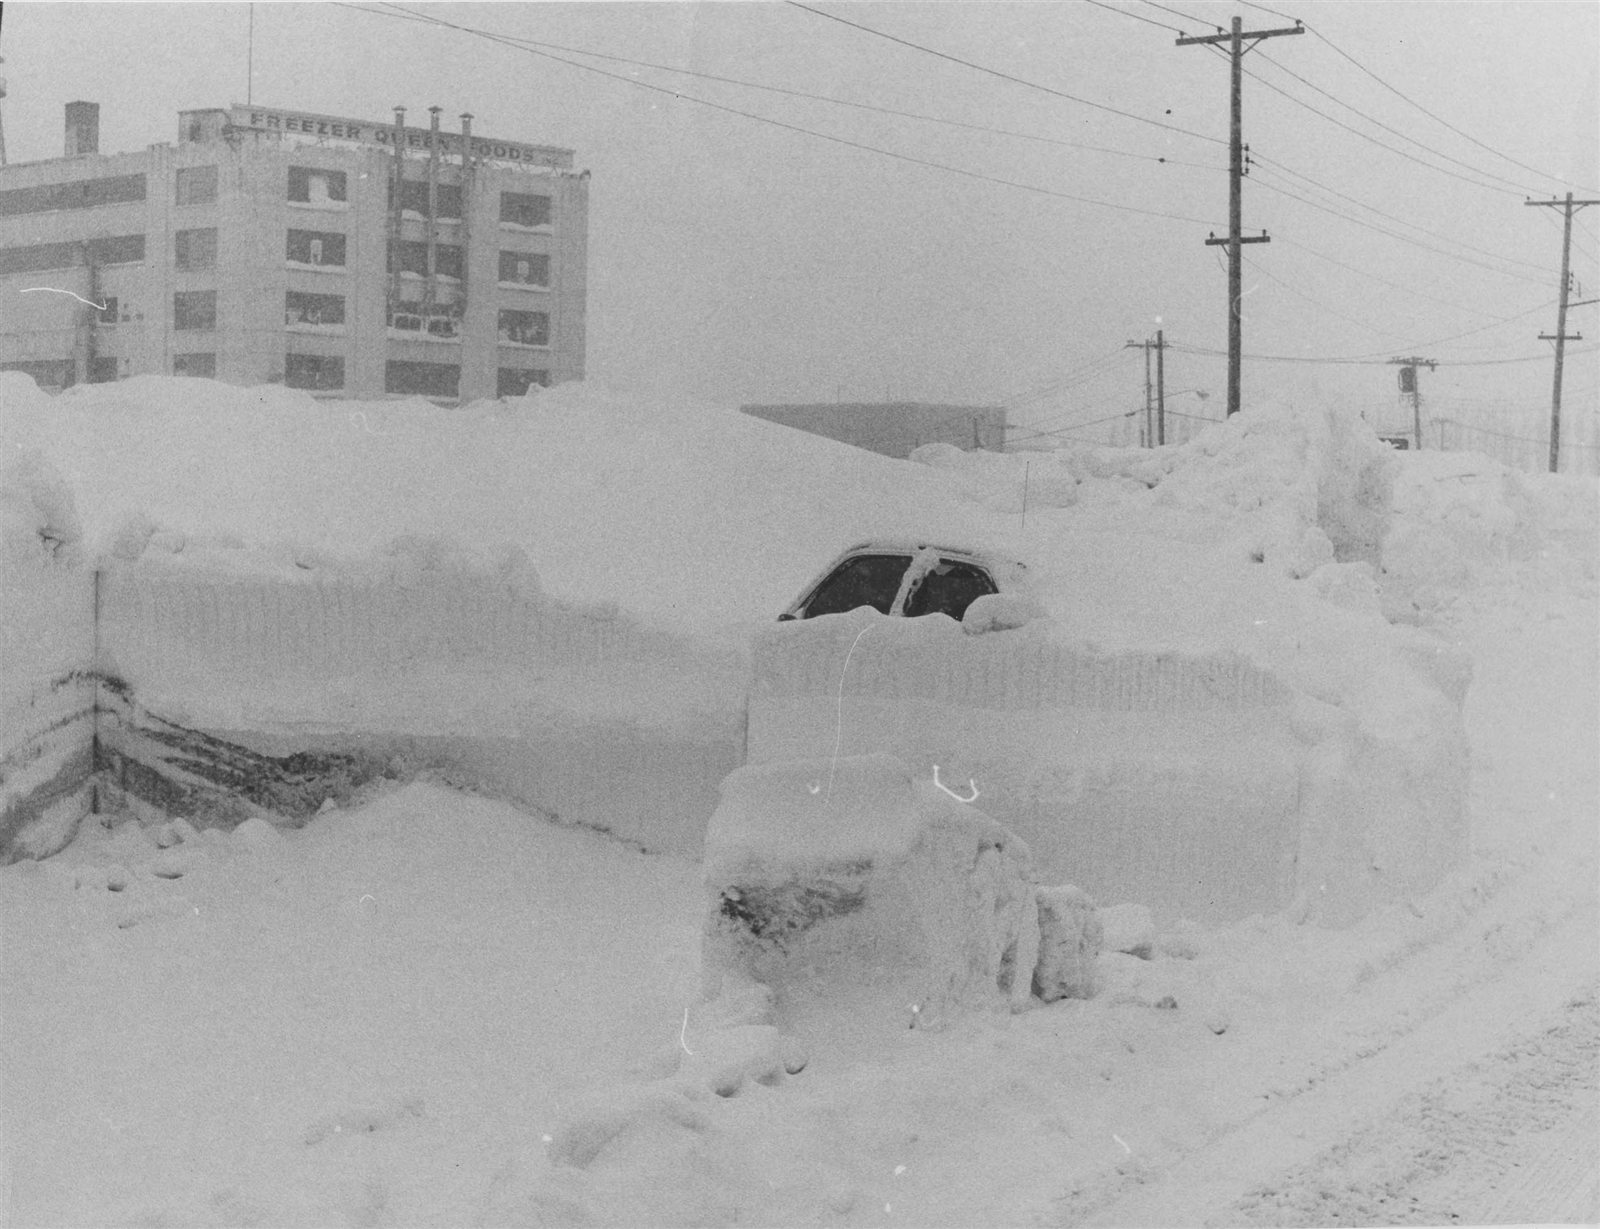 27cb3b3ba8c The Blizzard of  77  Saving lives when  all hell broke loose  – The ...